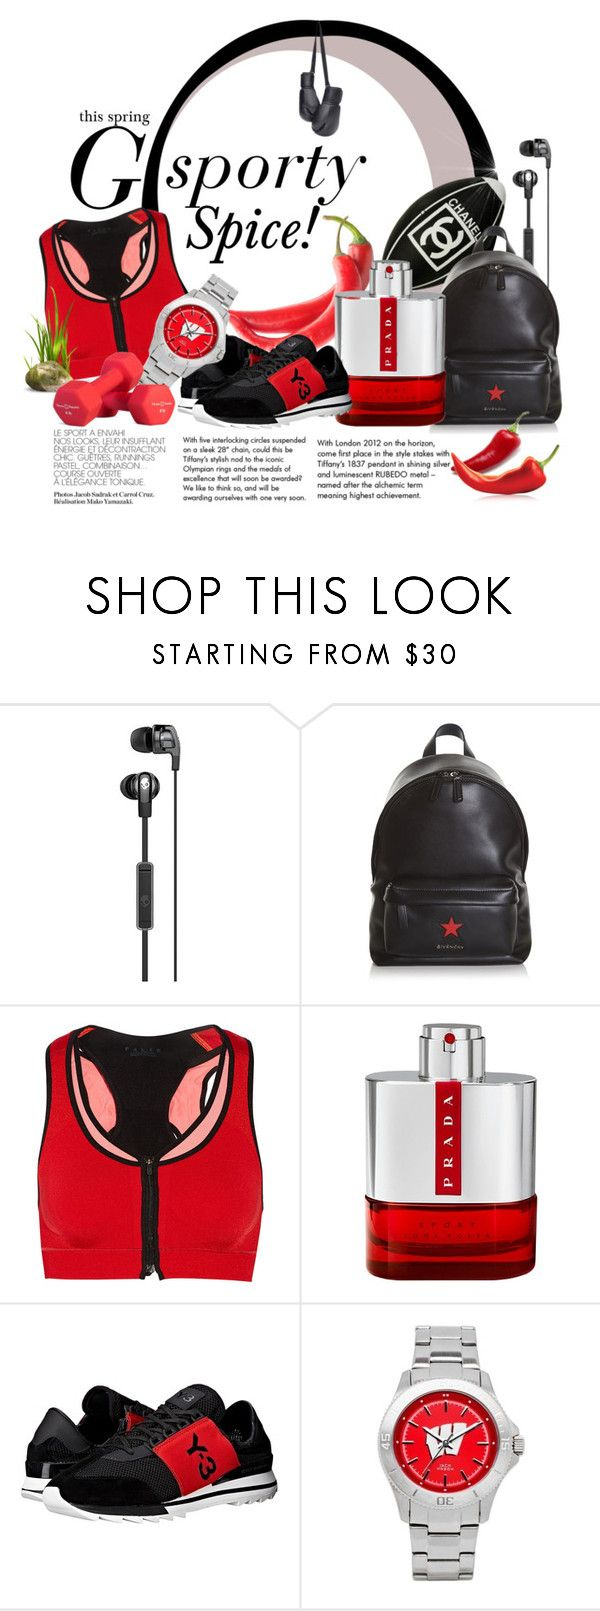 """""""Go Sporty Spice!"""" by alexandrazeres ❤ liked on Polyvore featuring Tiffany & Co., Chanel, Givenchy, Falke, Prada, Y-3, Jack Mason, sport, athletic and sportystyle"""